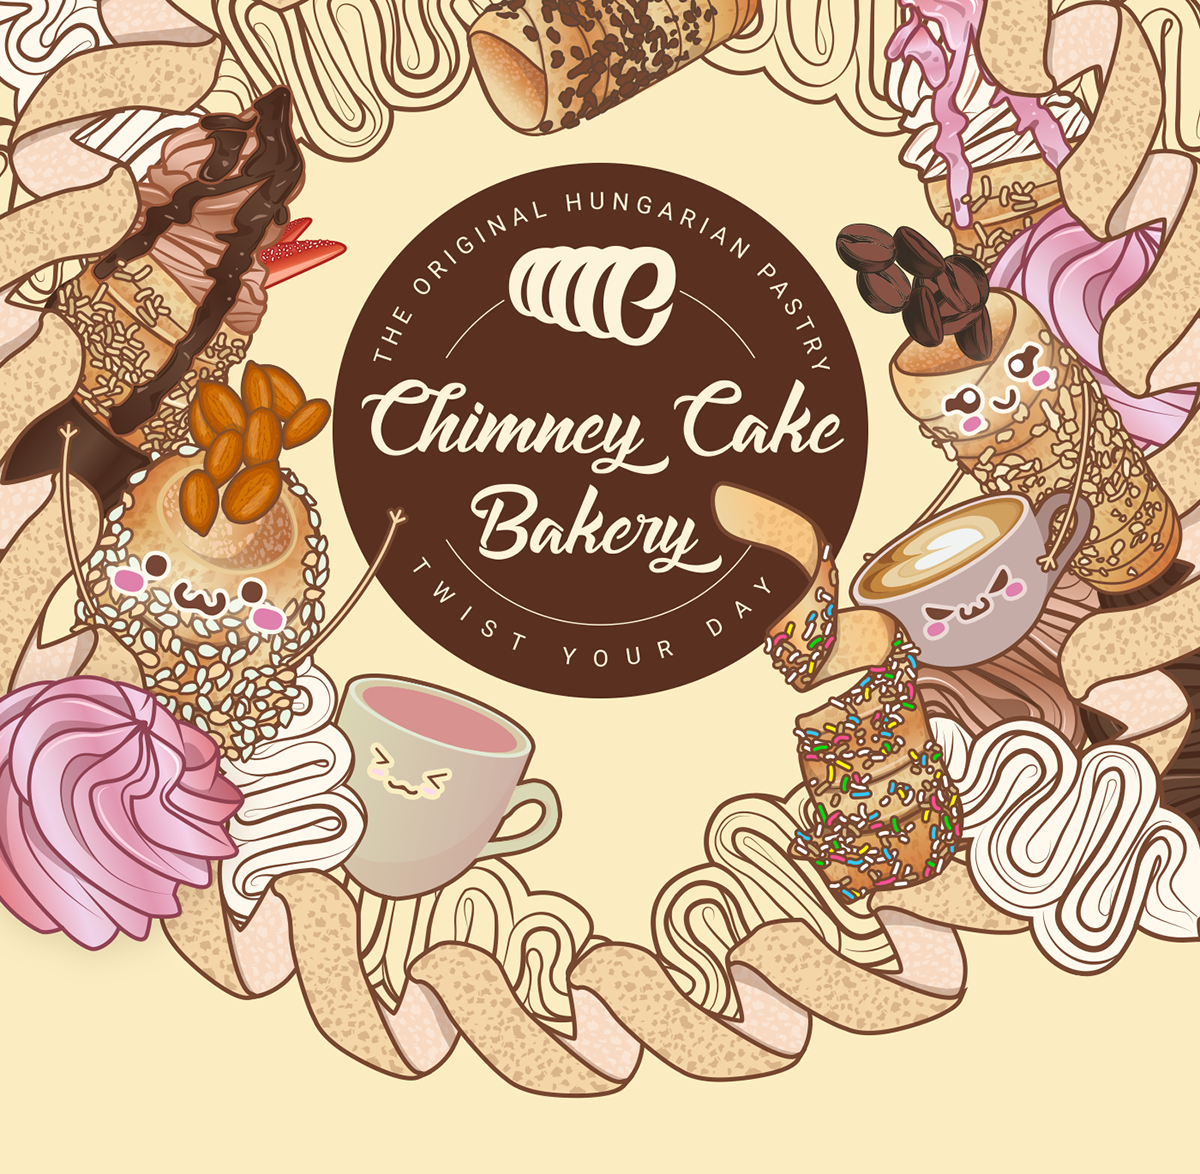 Illustration For Chimney Cake Bakery On Pantone Canvas Gallery